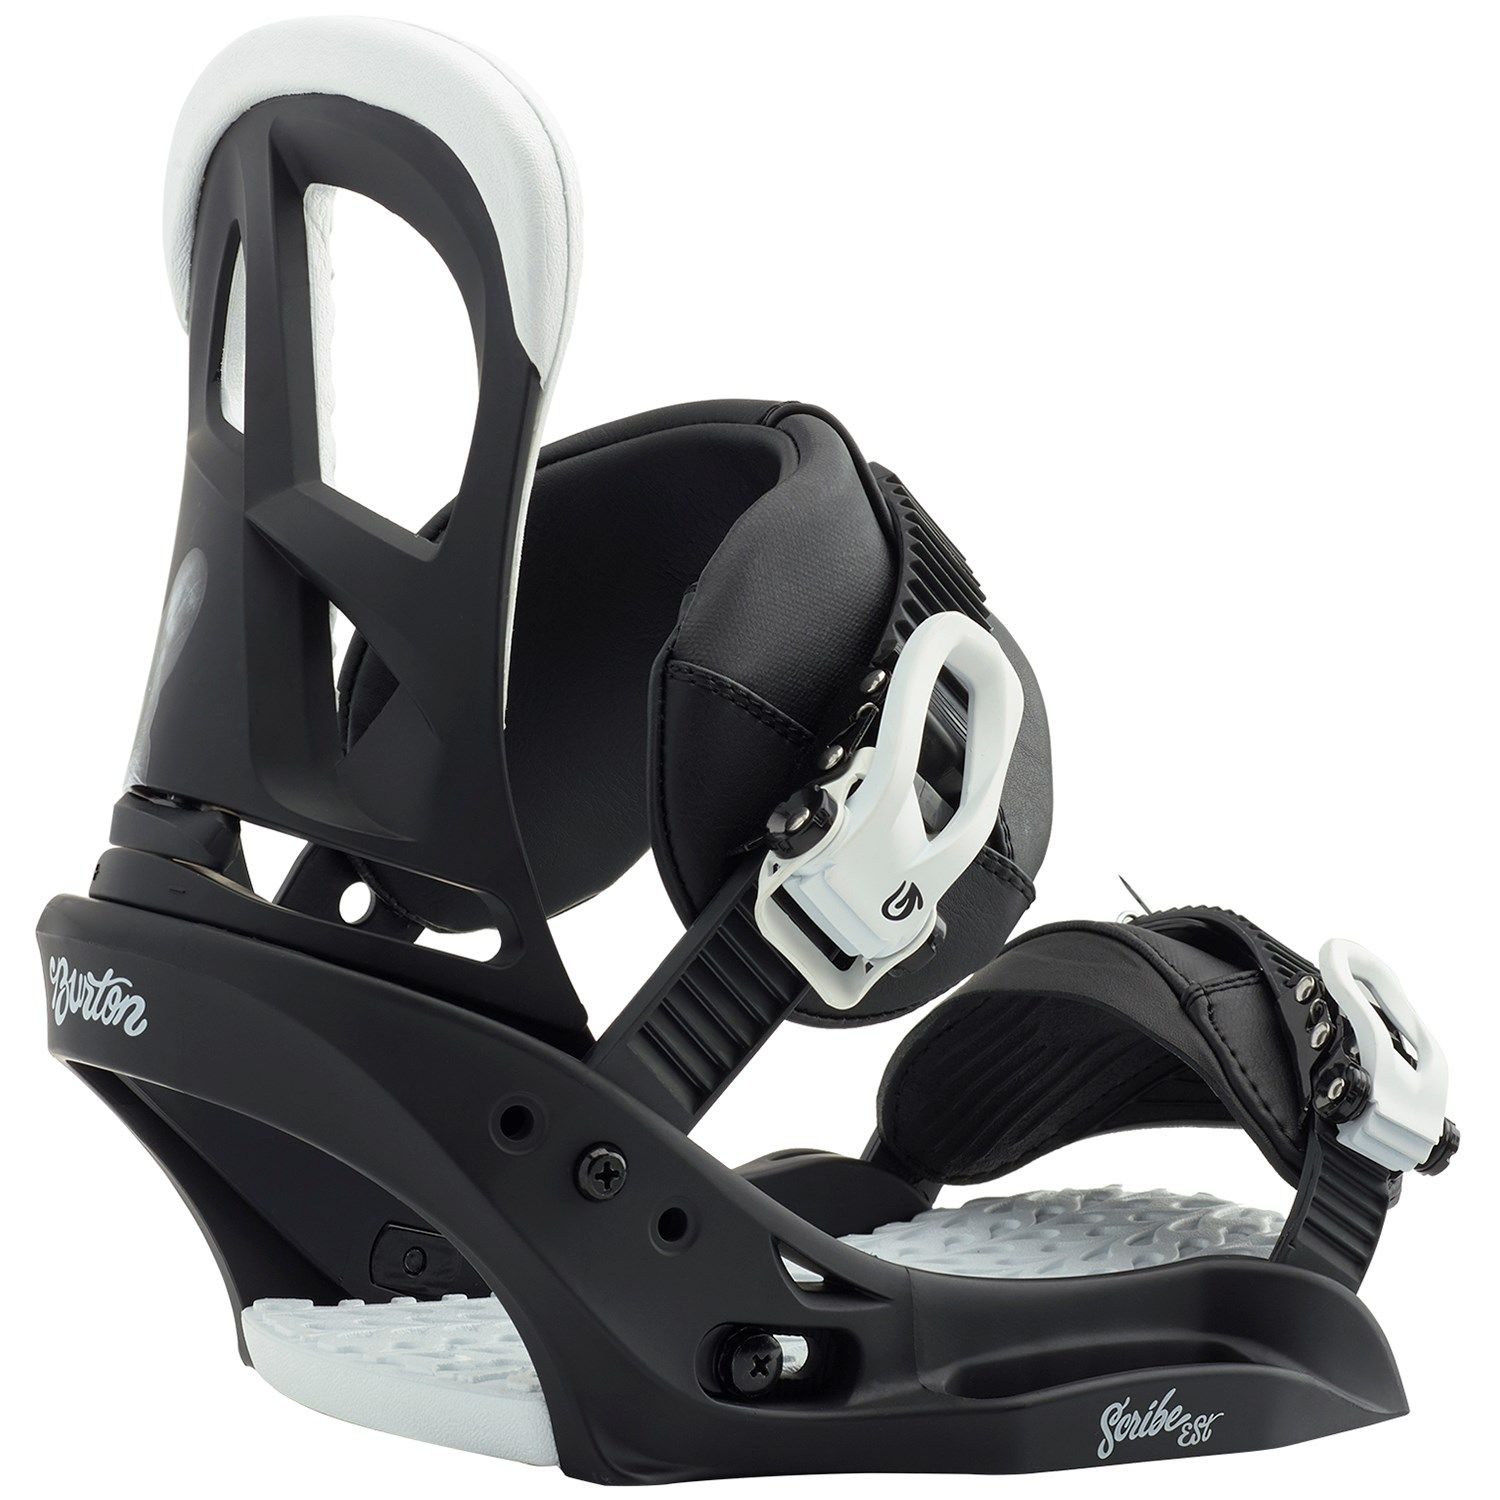 Women's Burton Scribe EST Snowboard Bindings 2019 - Medium in Black